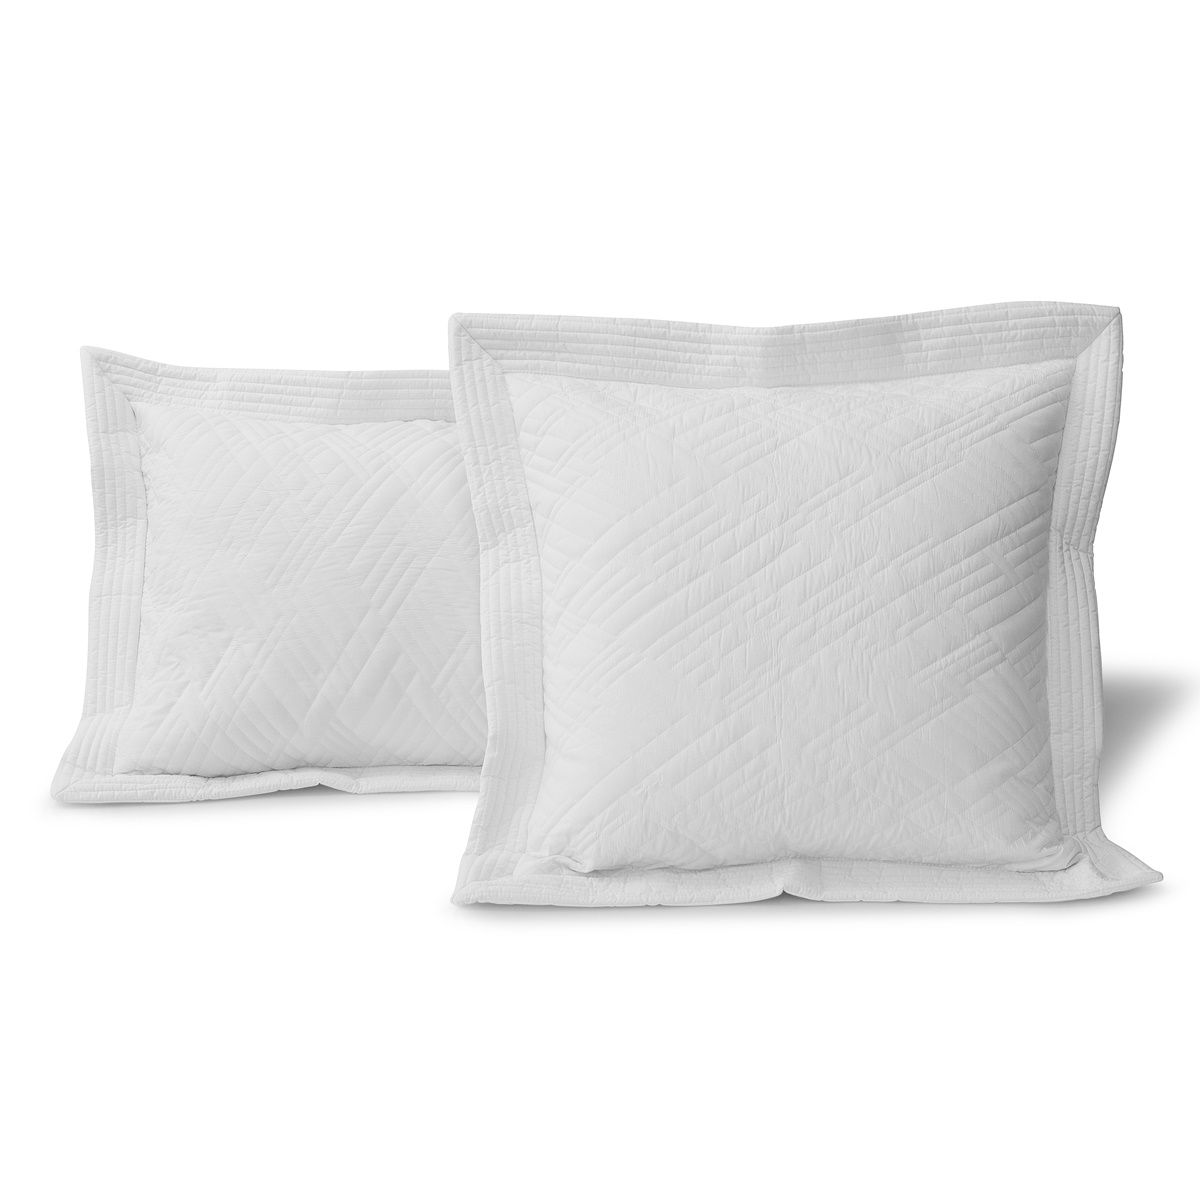 Pillow Case Verone | Bed linen | Tradition des Vosges